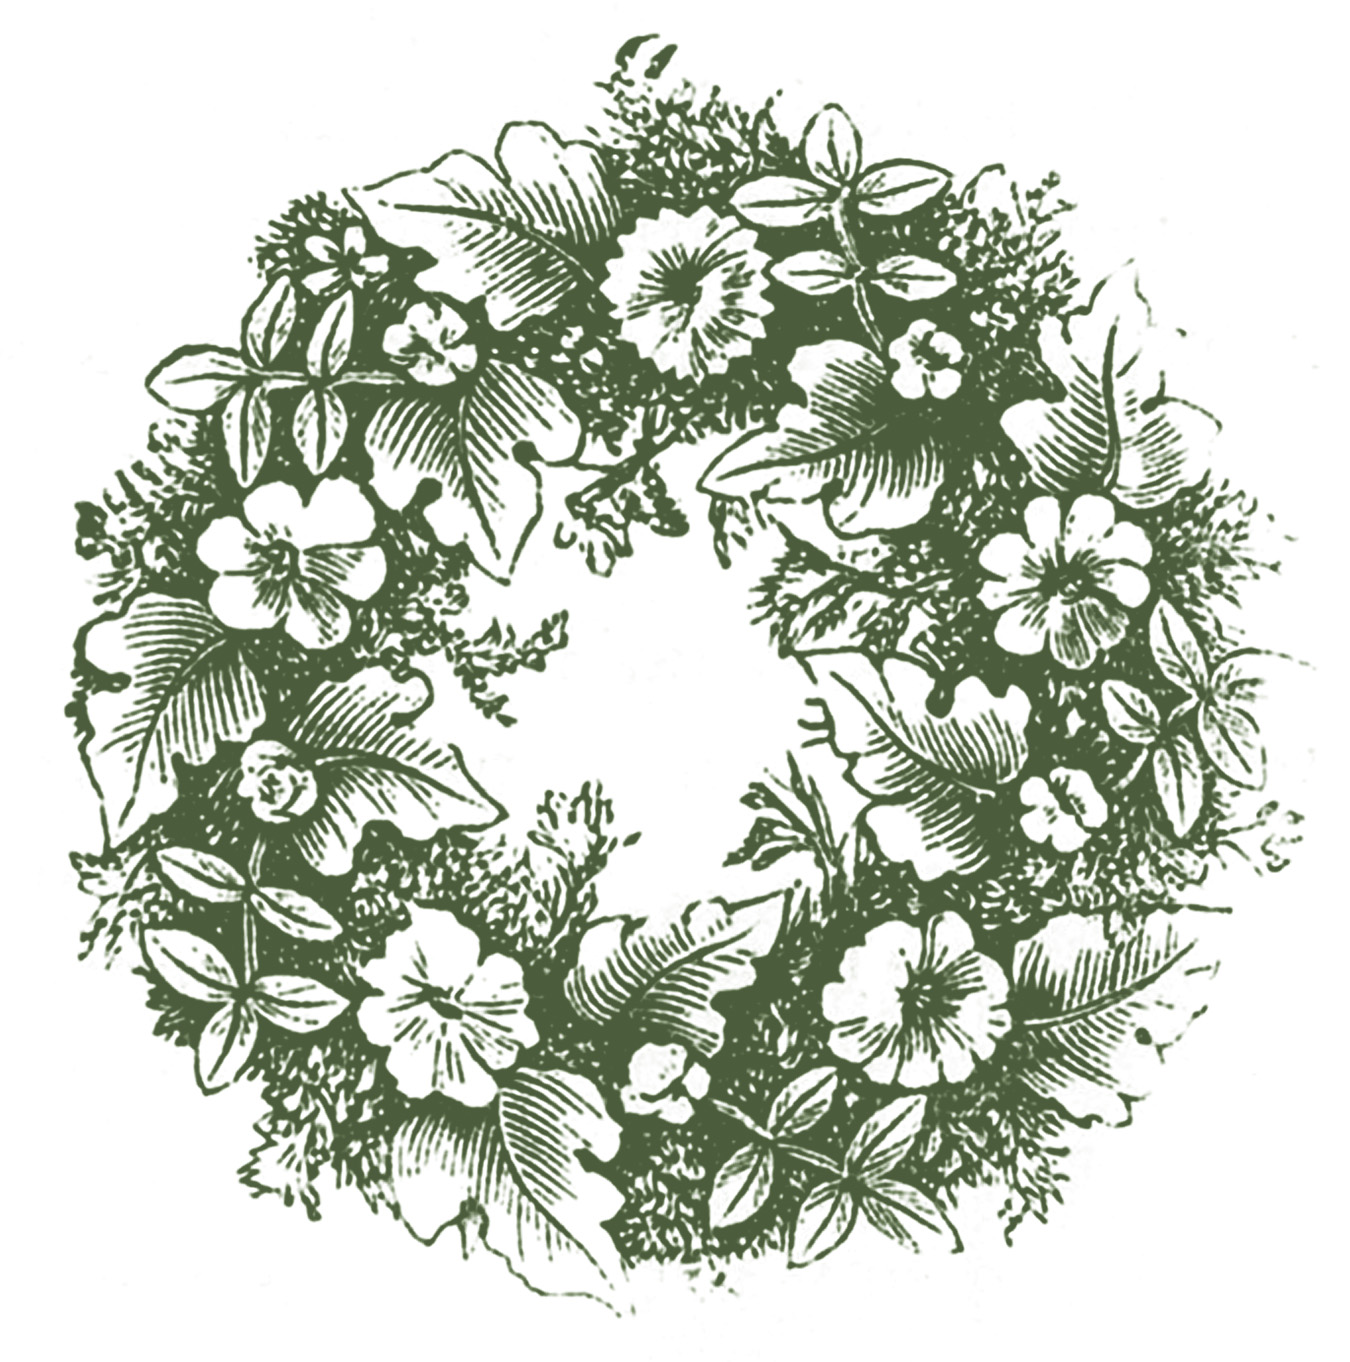 Wreath clipart victorian christmas Graphics black lovely Vintage Wouldn't